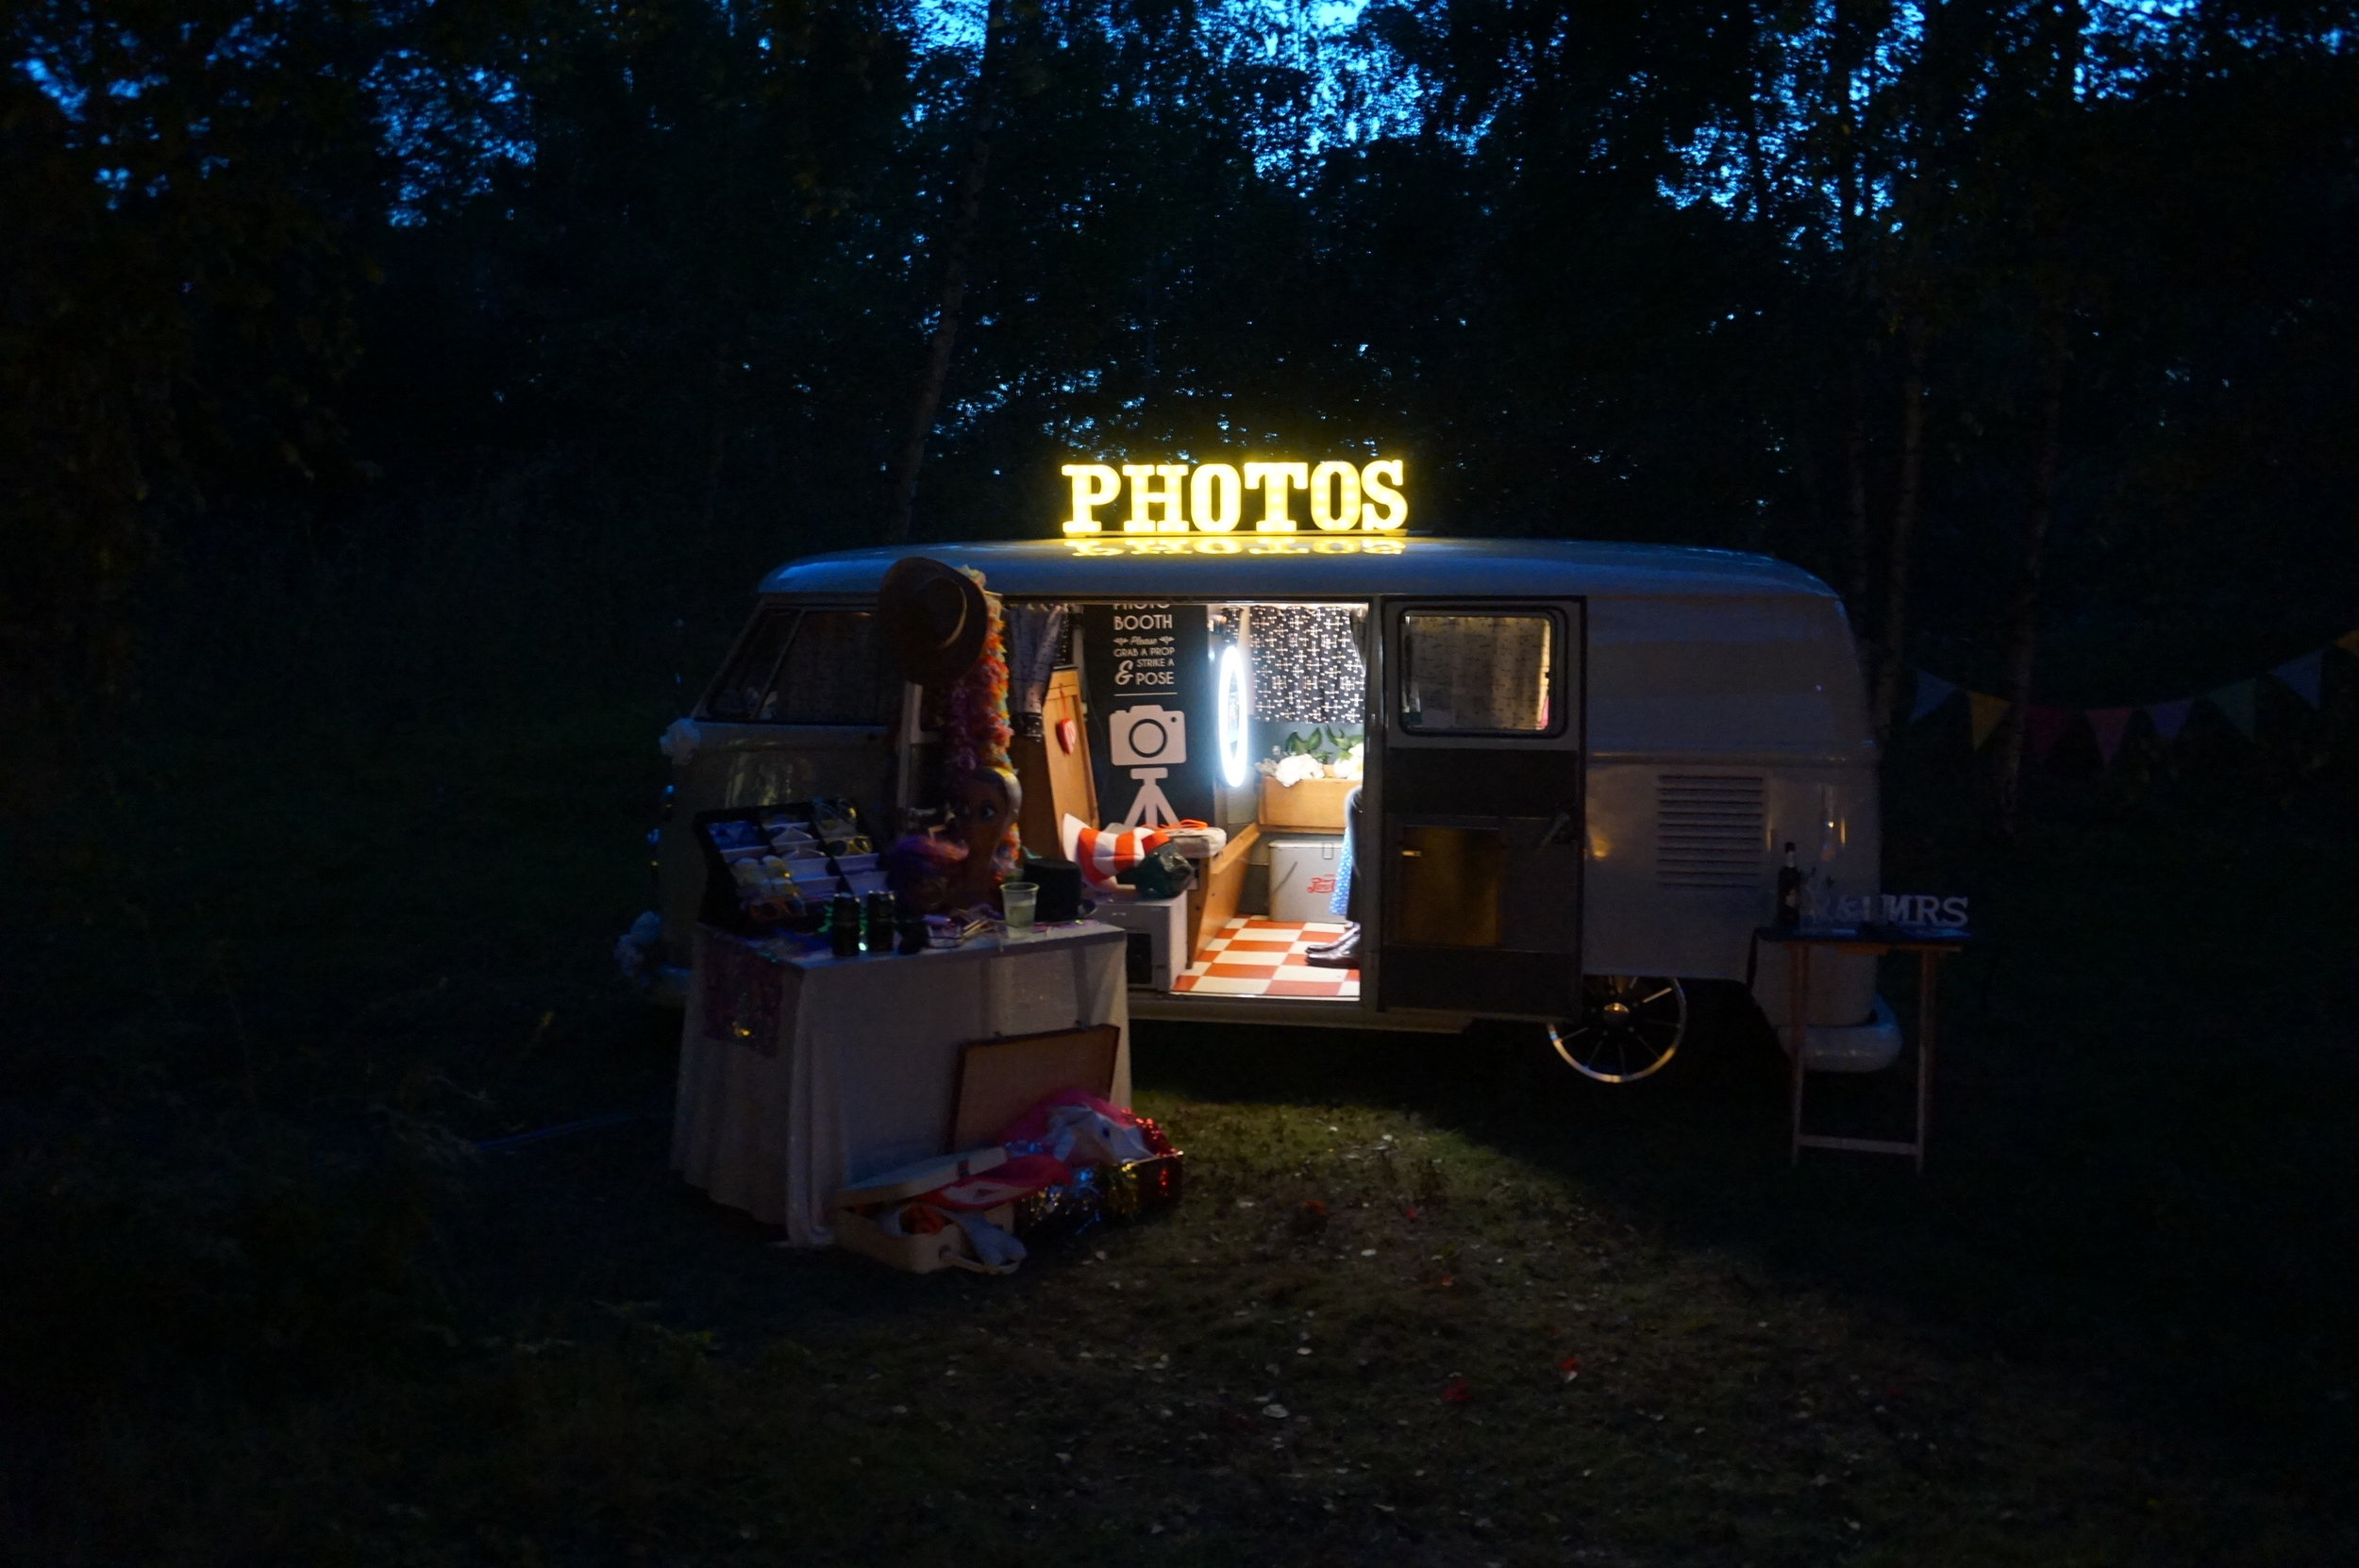 camper-photo-booth.JPG